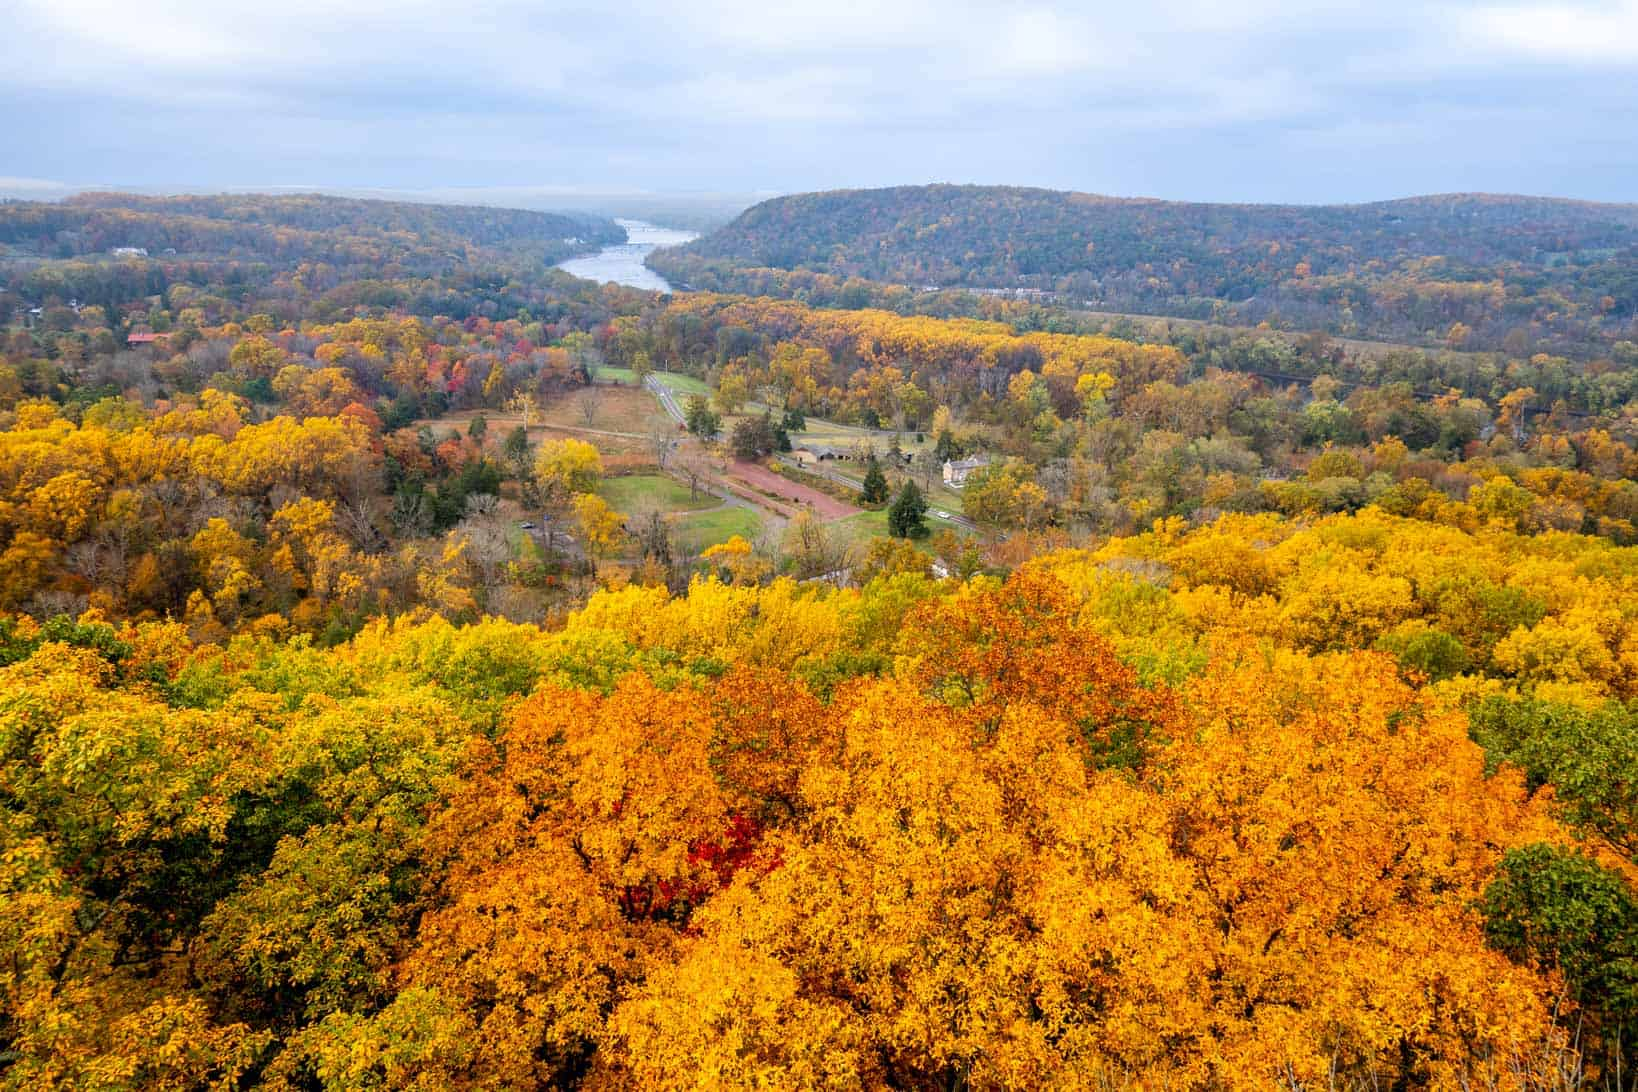 Aerial view of a landscape filled with fall foliage and a river cutting through it